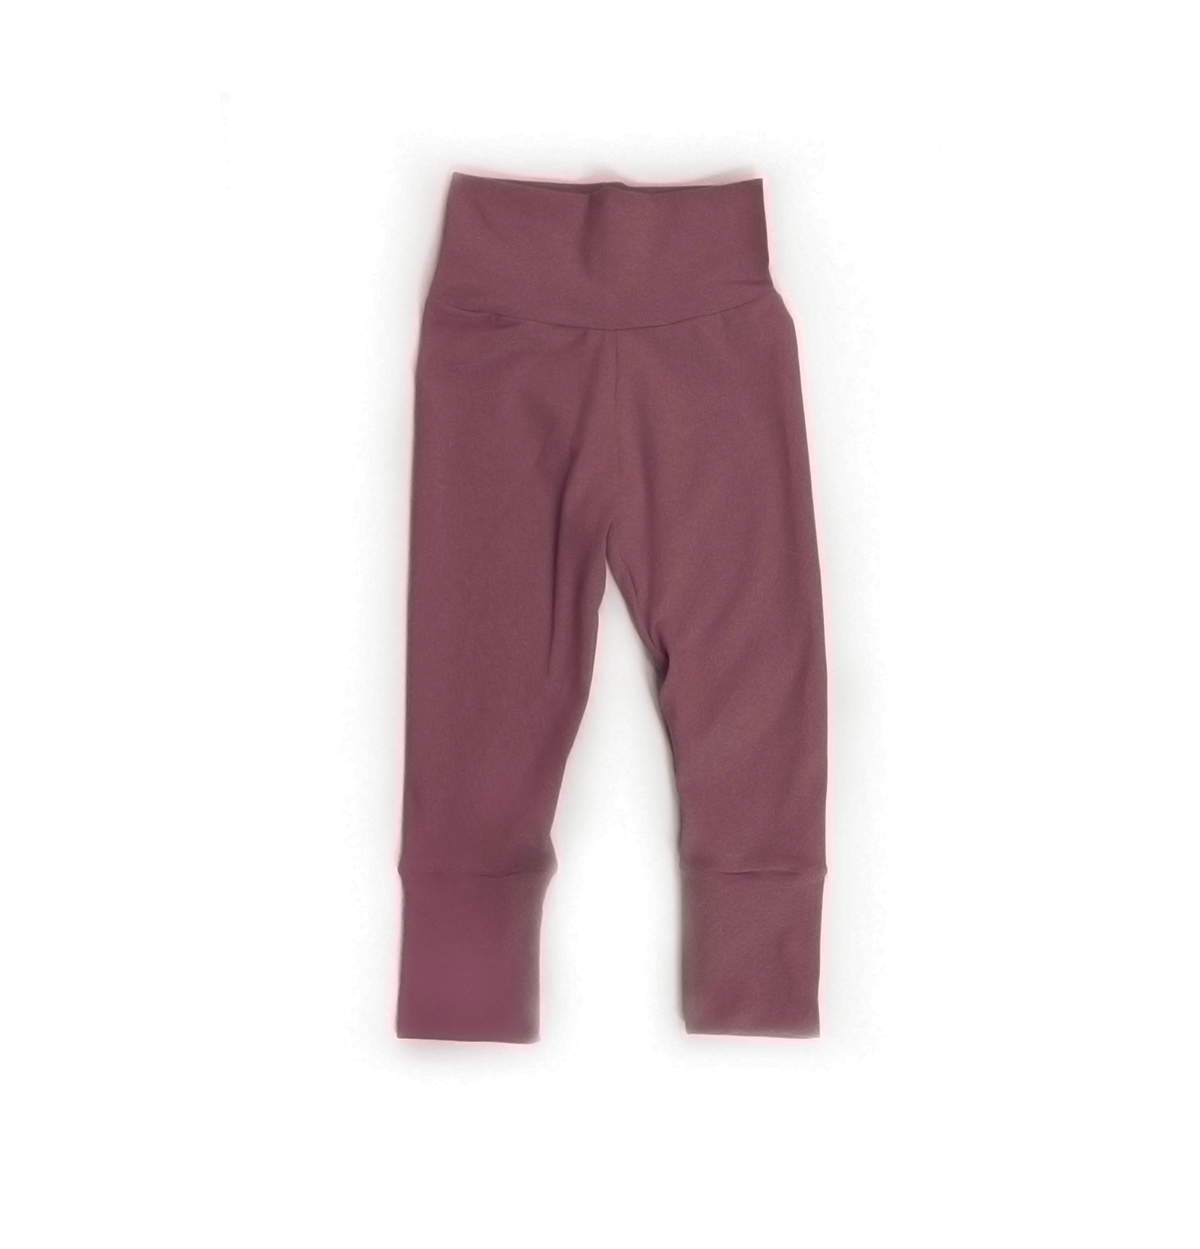 Little Sprout One-Size Pants™ - Dusty Rose 00977